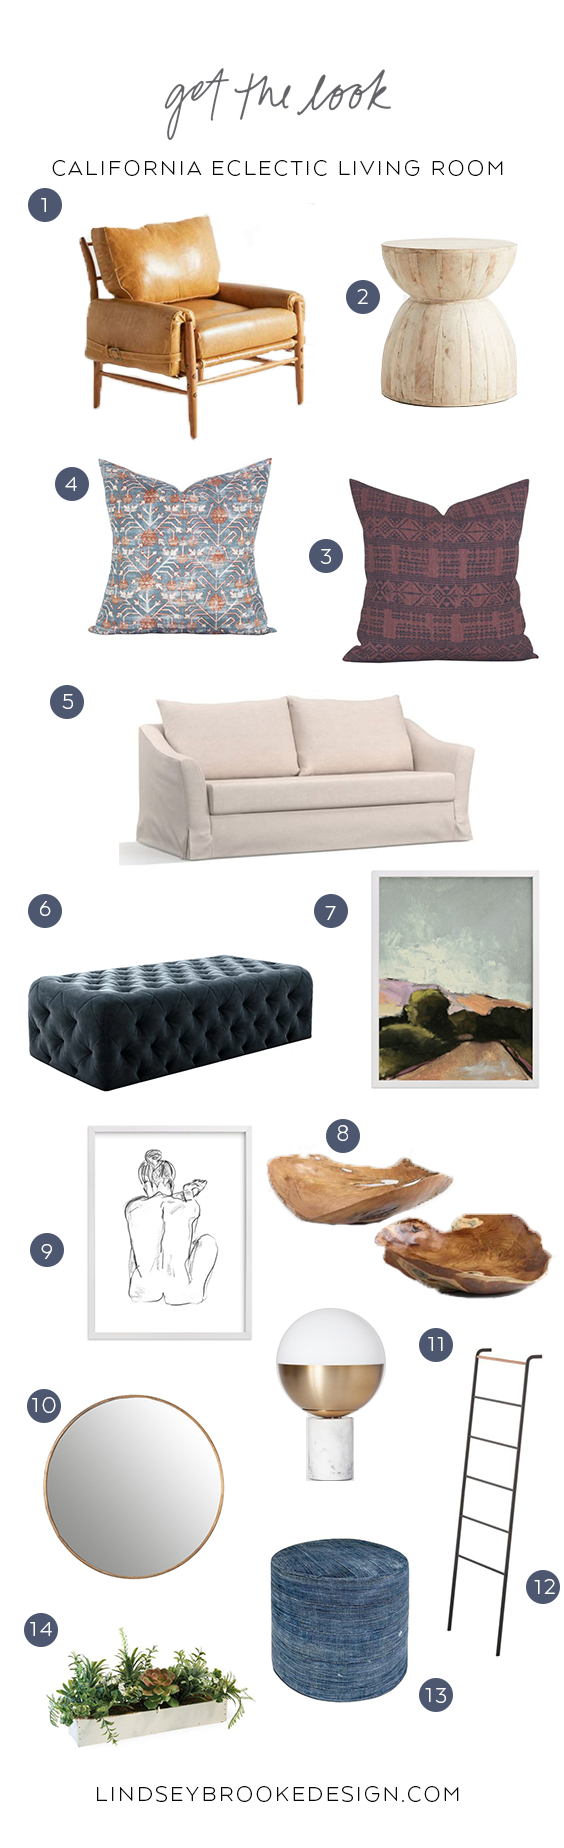 Mulholland Drive Project Reveal: California Eclectic Living Room.png